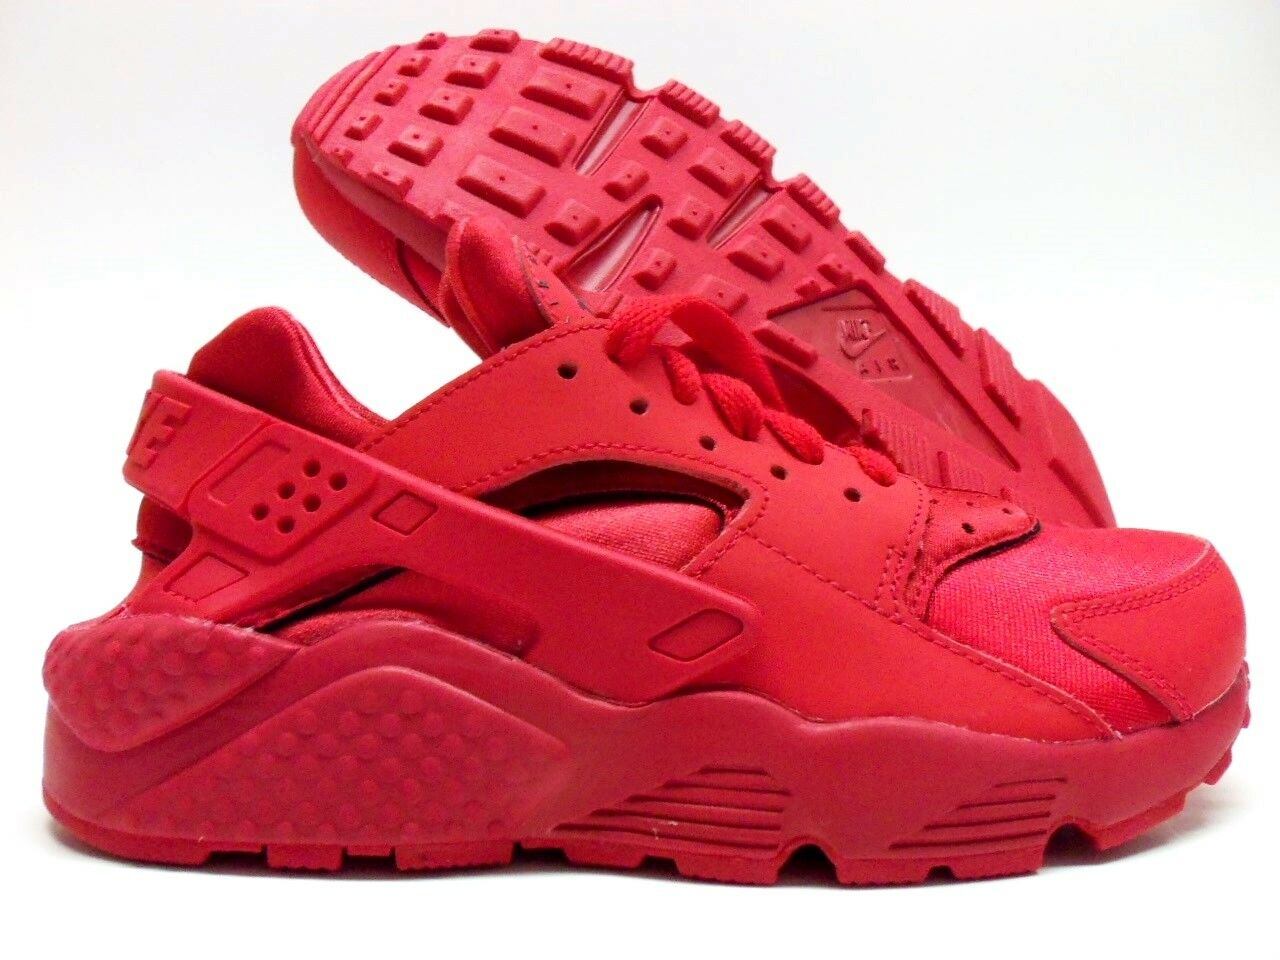 NIKE AIR HUARACHE ID OCTOBER RED SPORT RED SIZE WOMEN'S 6 [777331-978]